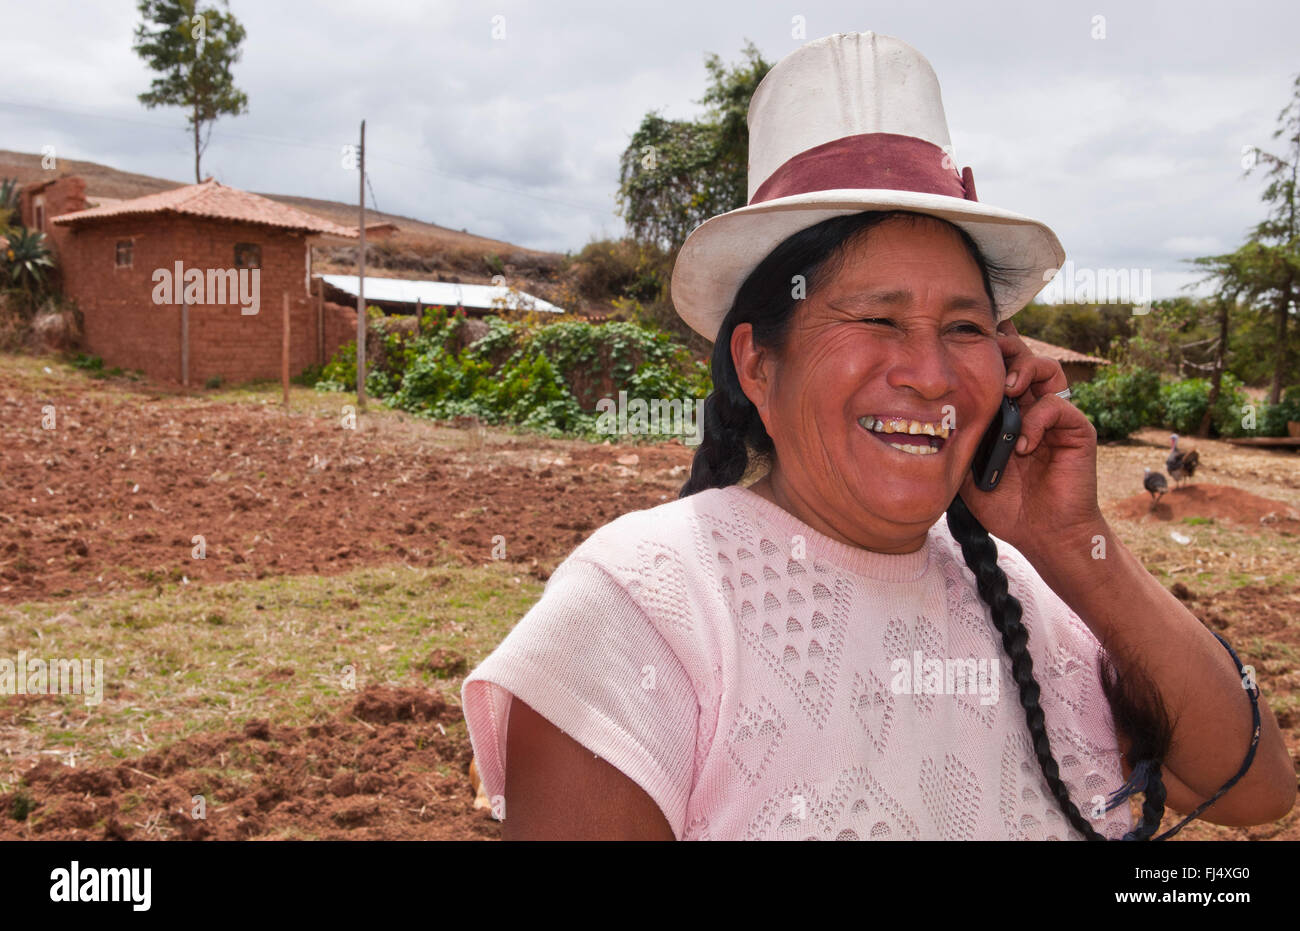 cheerful looking female Peruvian phoning in a field, portrait, Peru, Chinchero - Stock Image